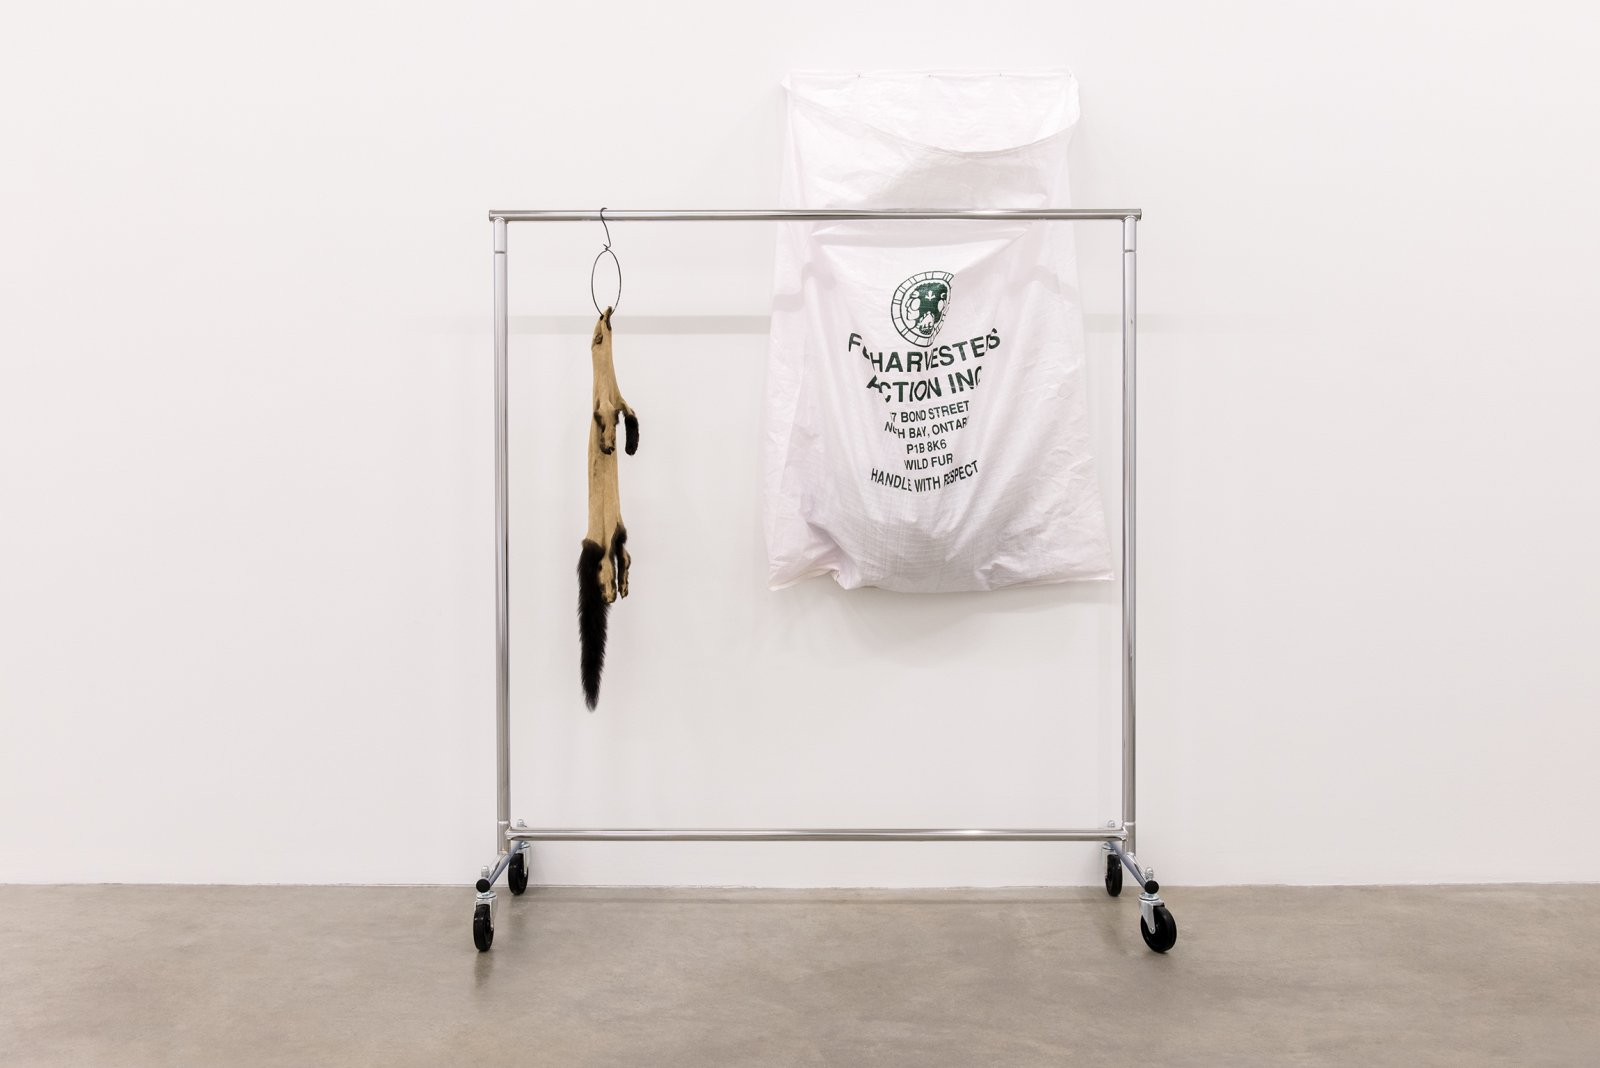 Duane Linklater, The state that I seek to name, 2014, fisher fur, garment rack, hanger, hand dyed bag, coat, 82 x 60 x 20 inches (207 x 151 x 52 cm) by Duane Linklater